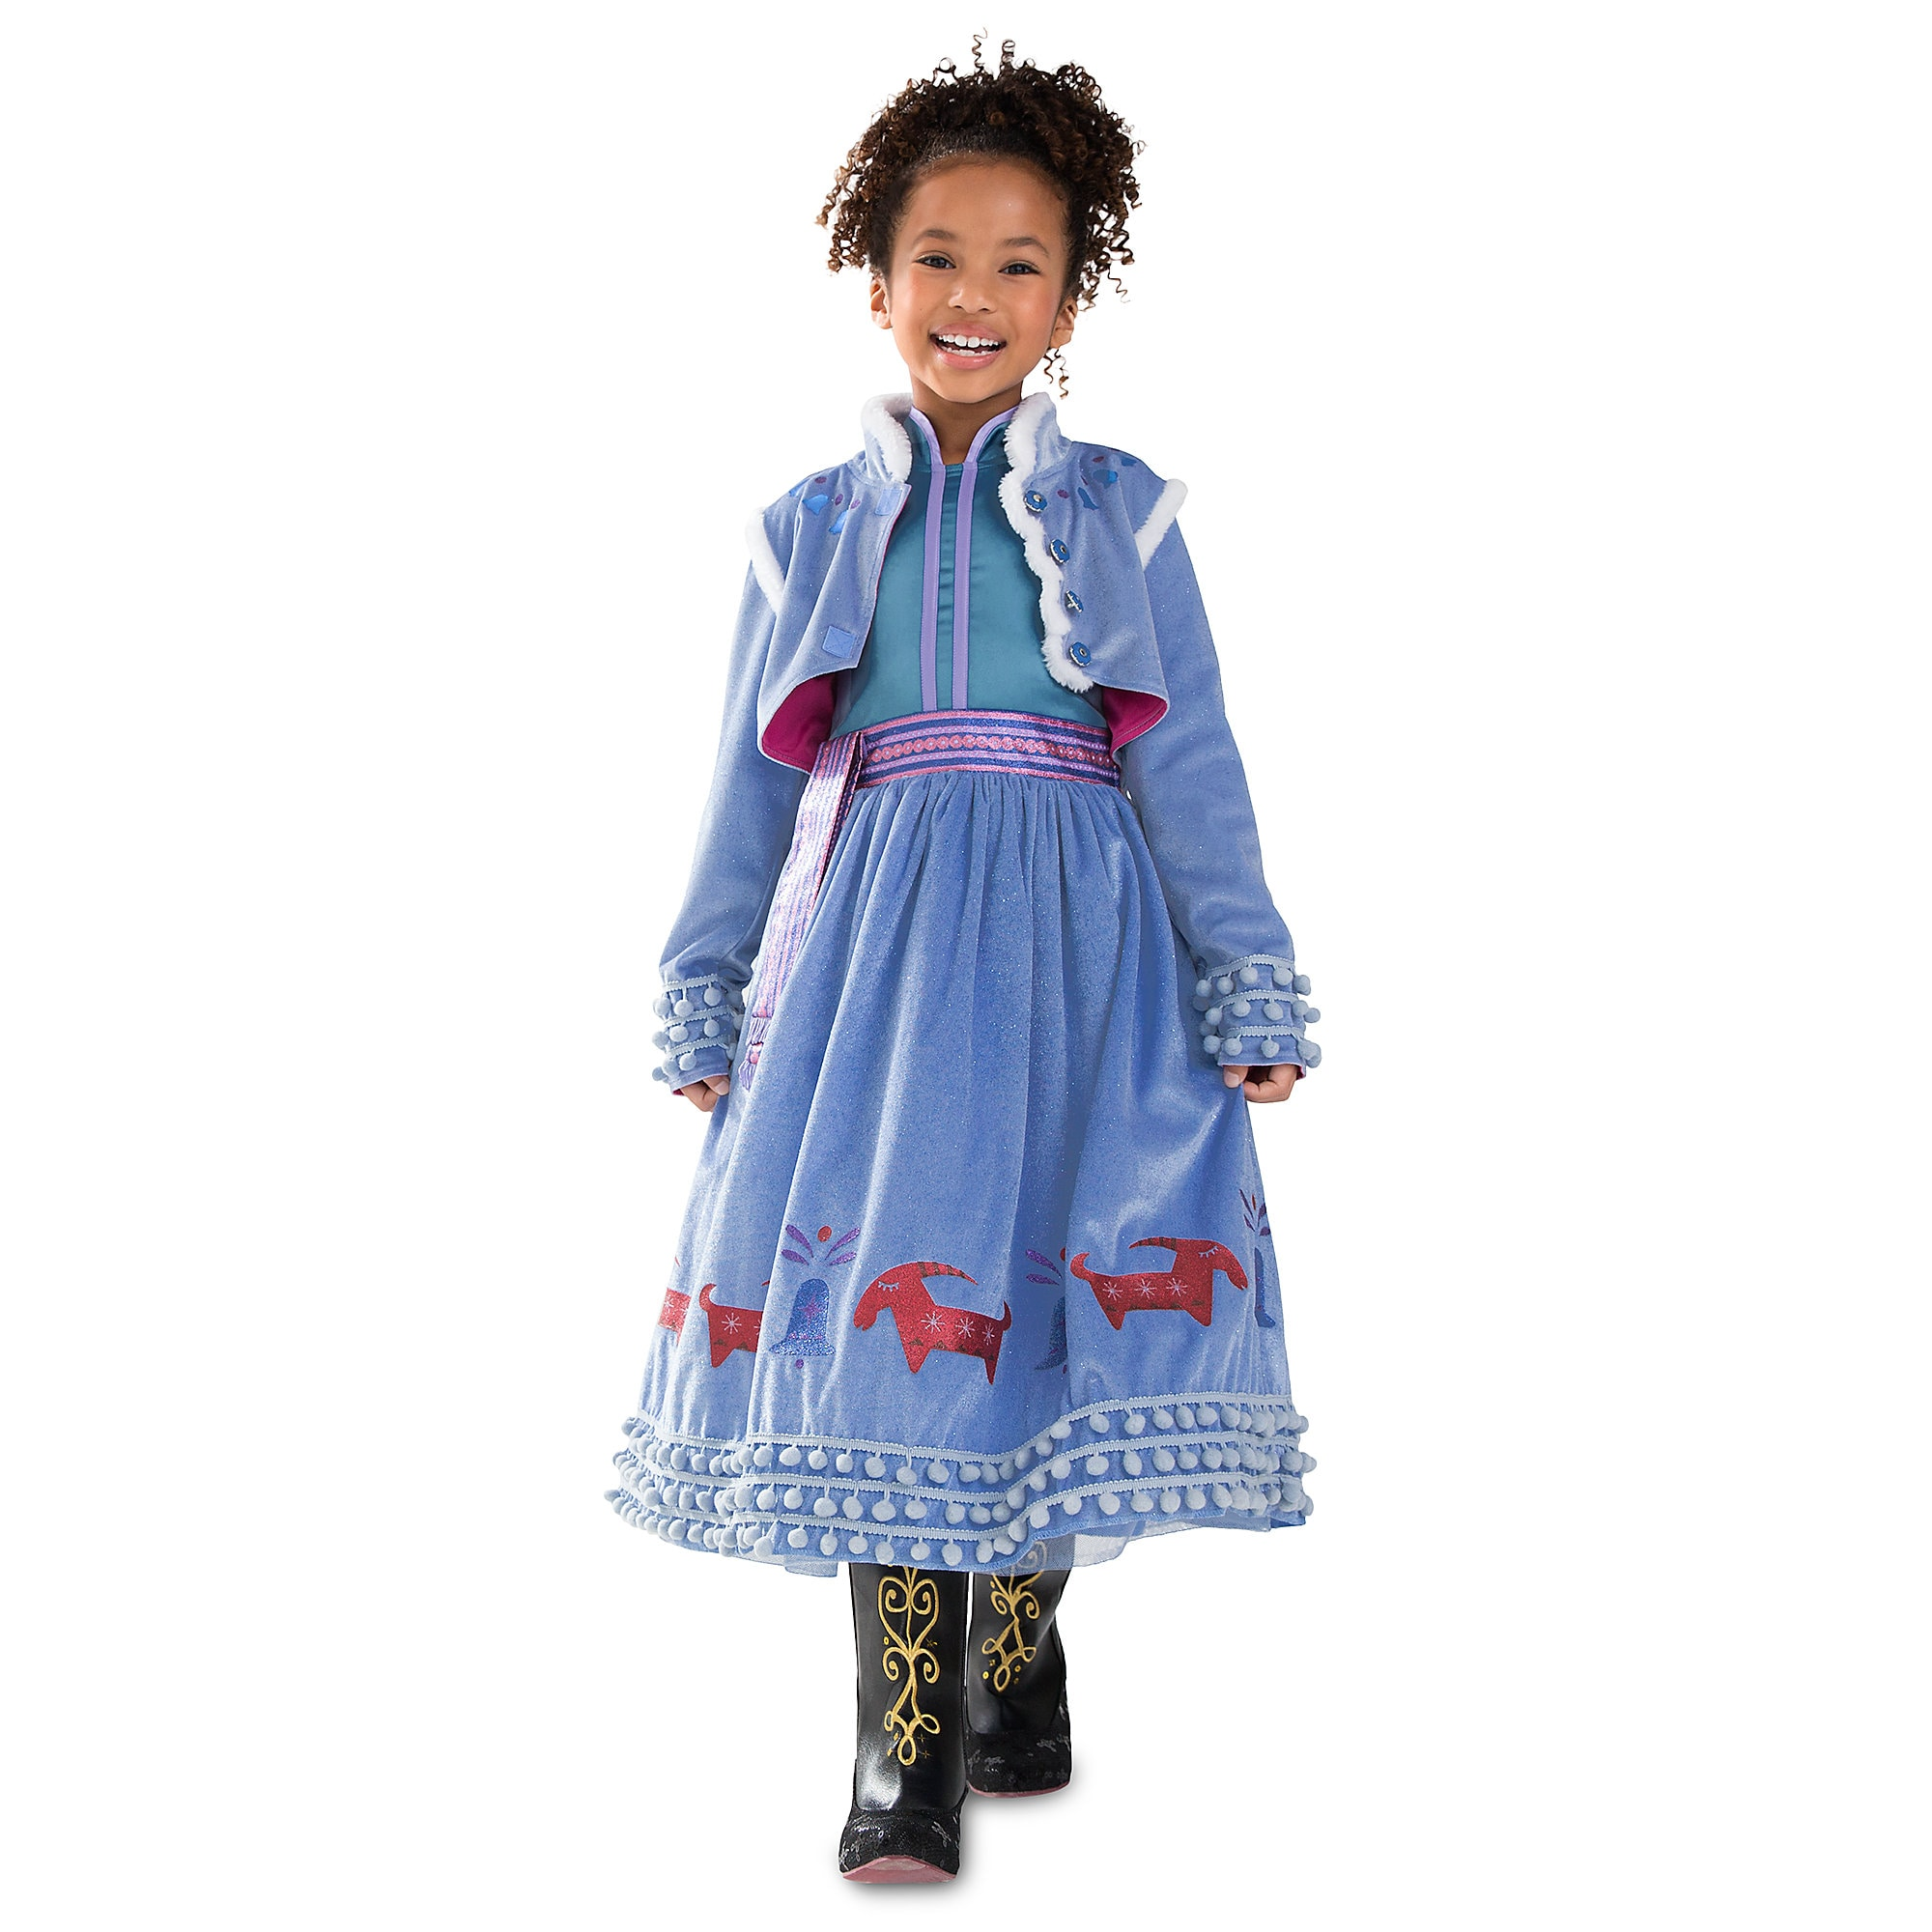 Thumbnail Image of Anna Deluxe Costume for Kids - Olafu0027s Frozen Adventure # 1  sc 1 st  shopDisney & Anna Deluxe Costume for Kids - Olafu0027s Frozen Adventure | shopDisney